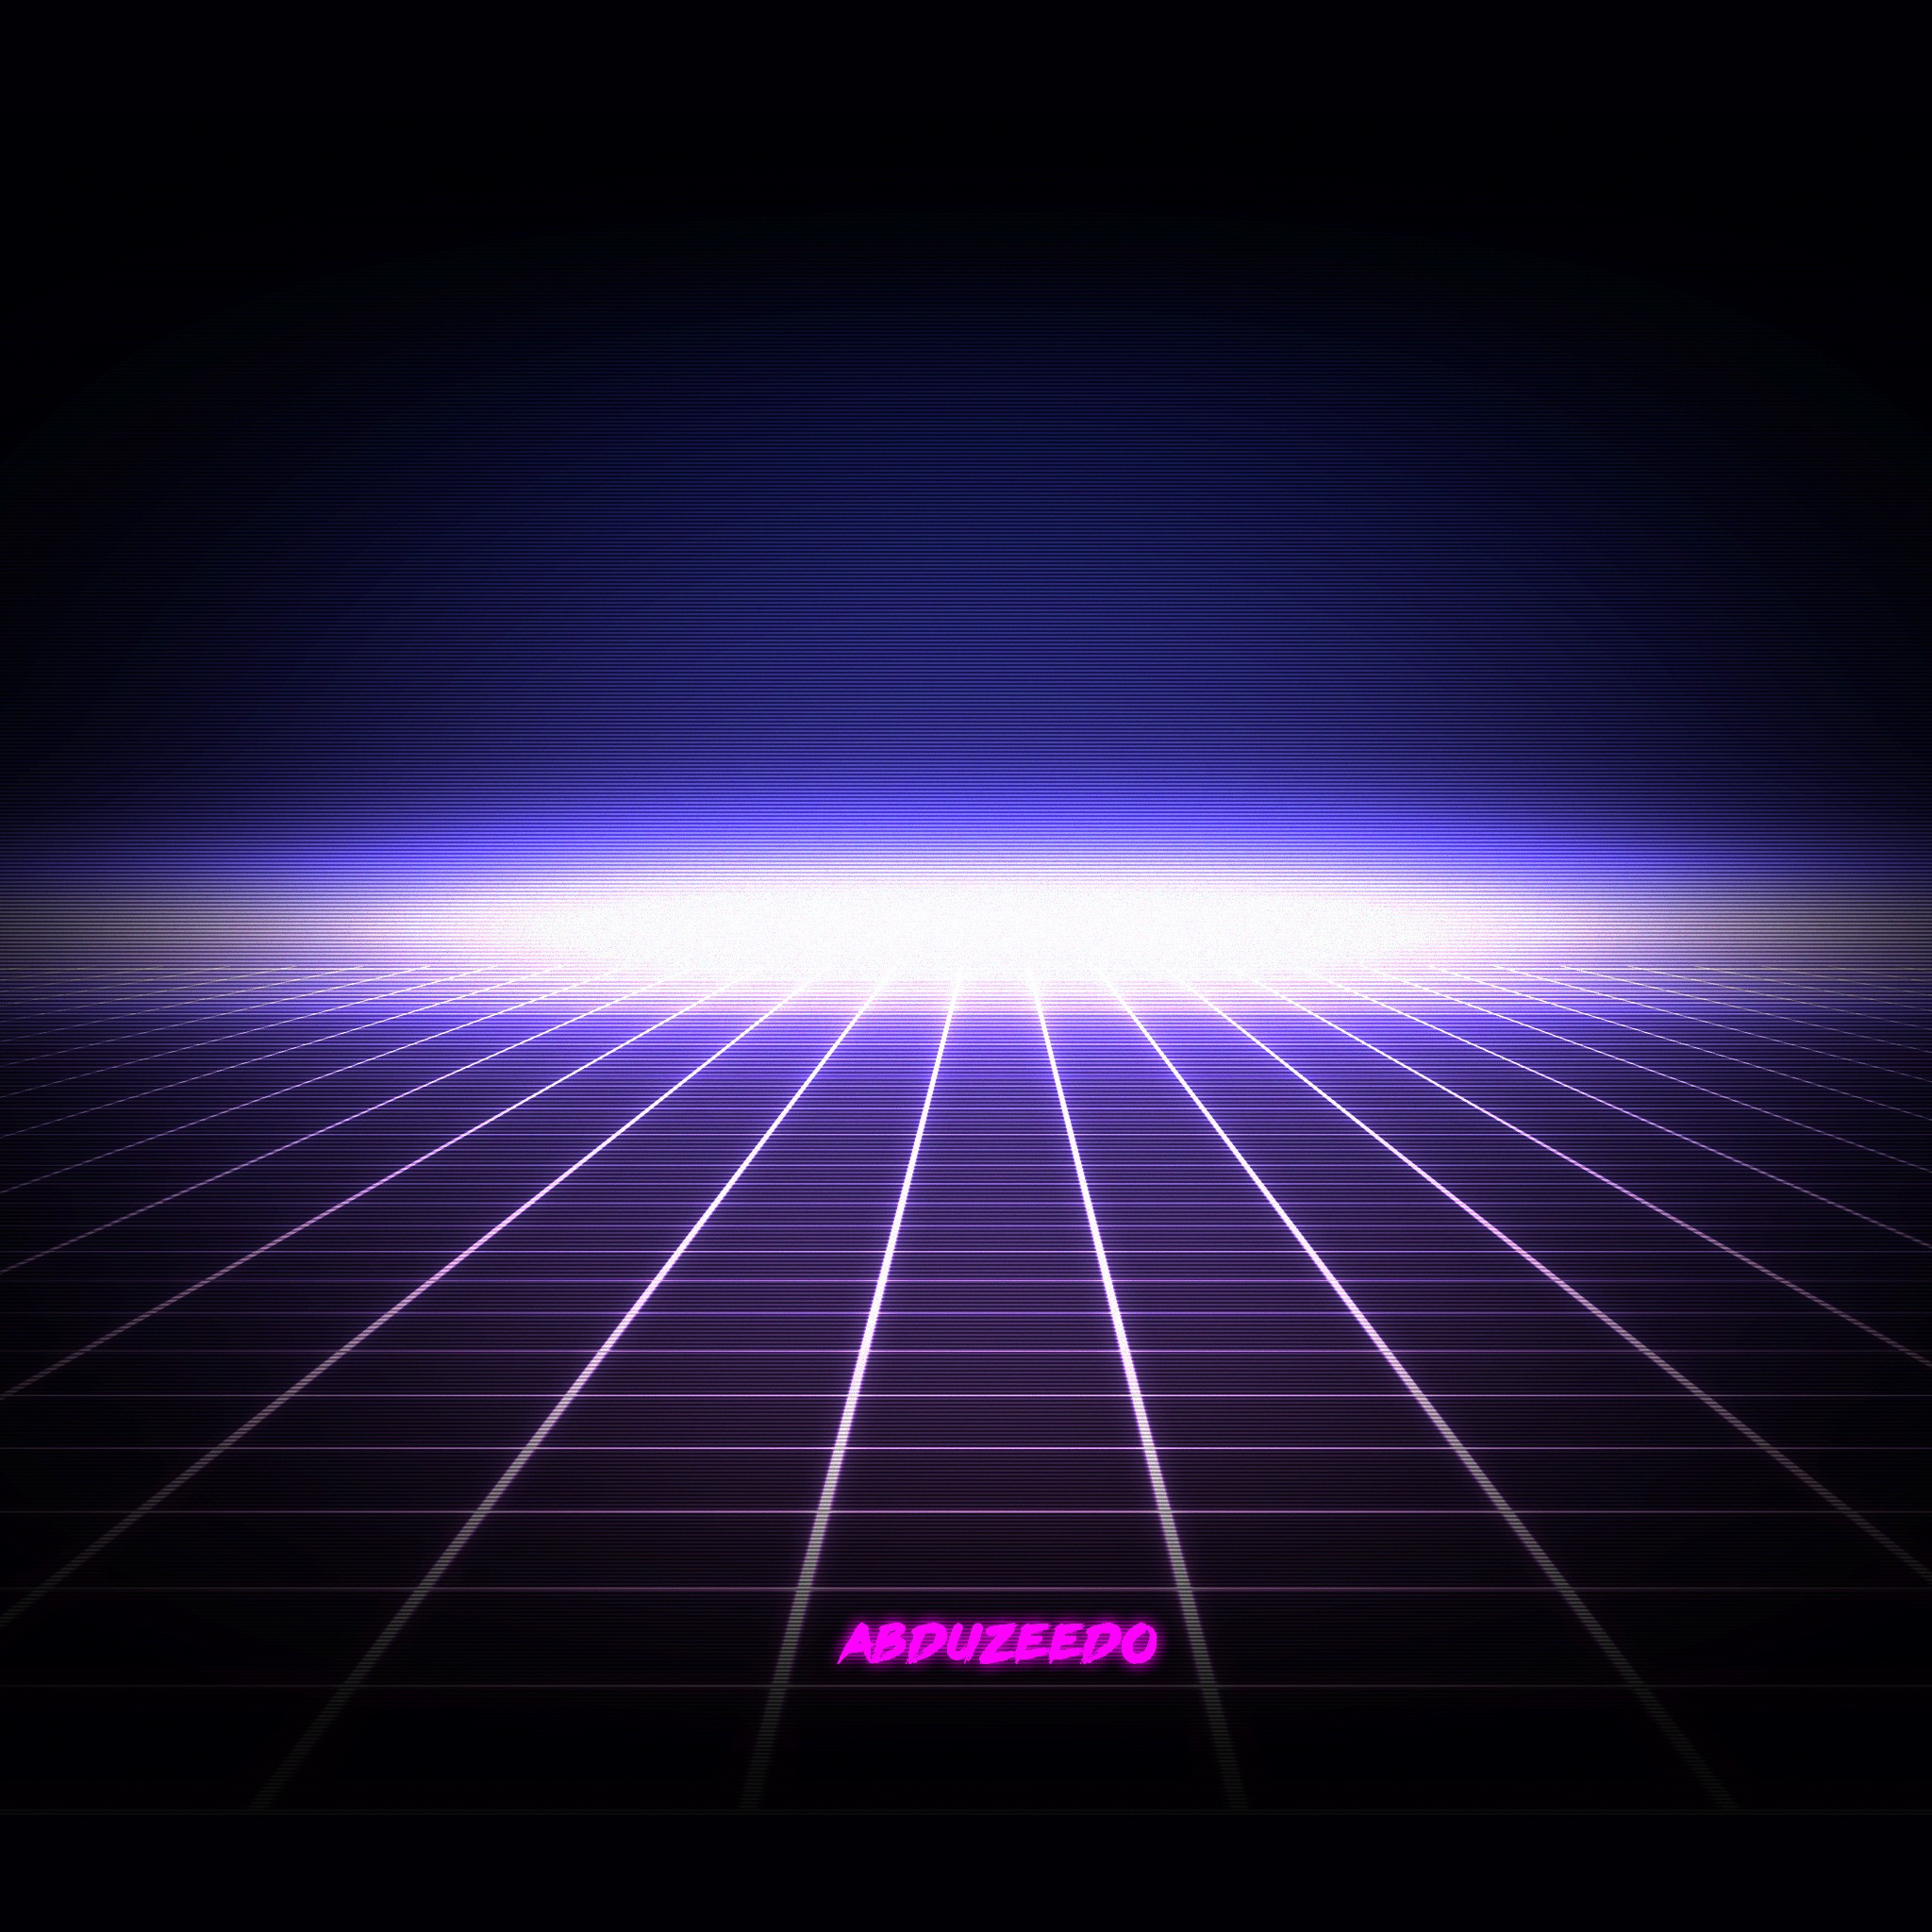 80s neon wallpaper download free awesome high - 80 s floral wallpaper ...